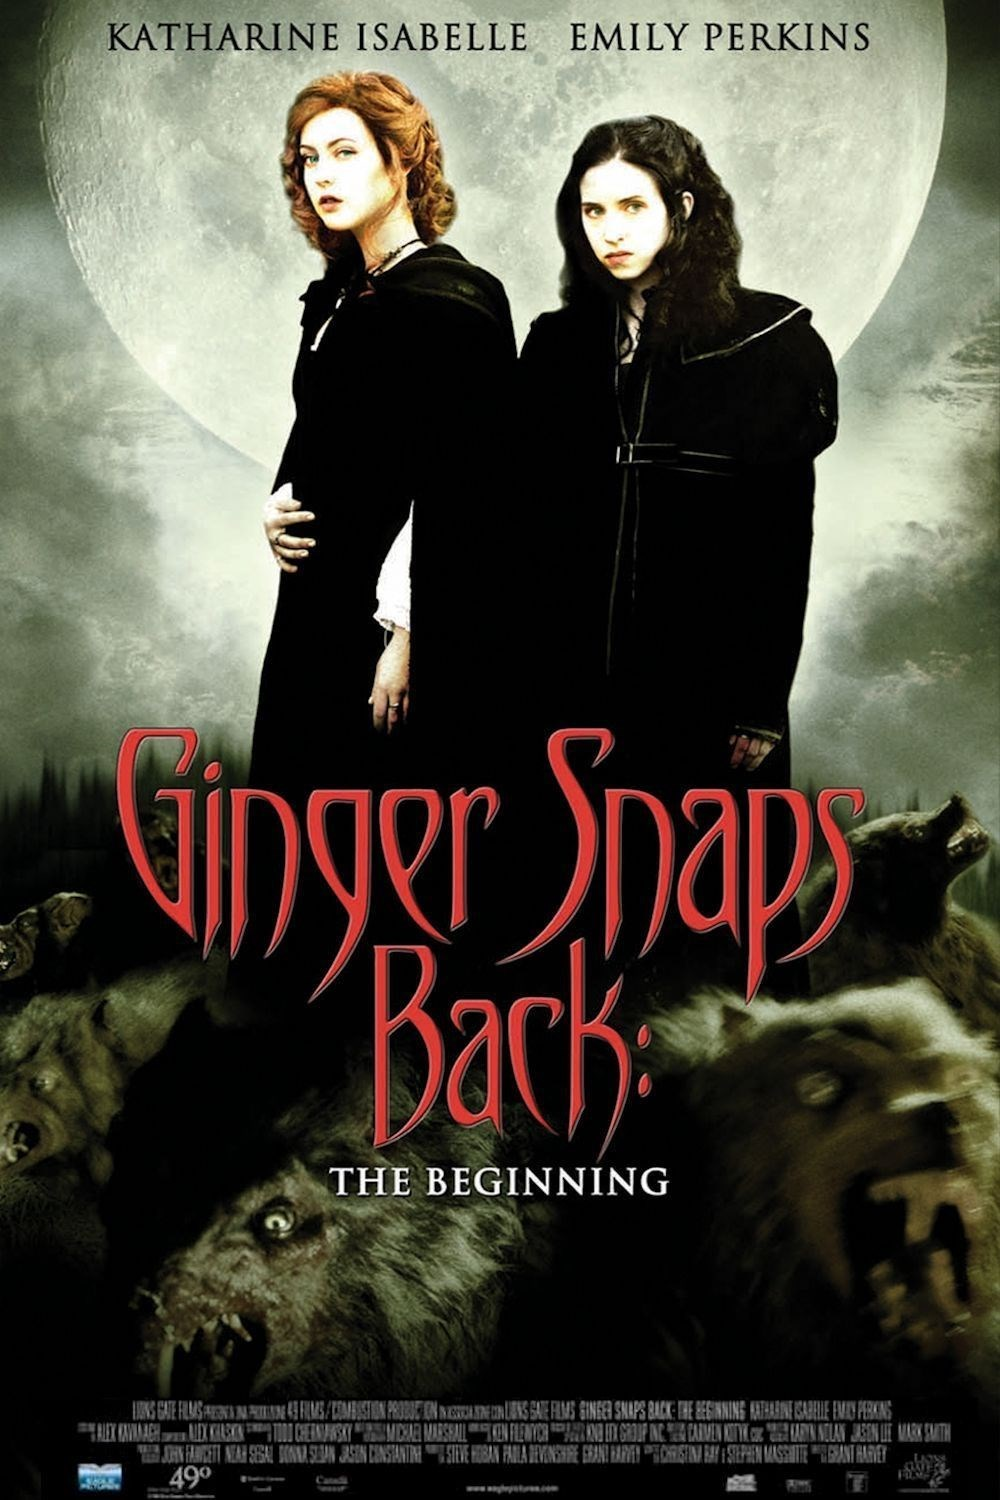 ginger-snaps-3--ginger-snaps-back-the-beginning.41573.jpg